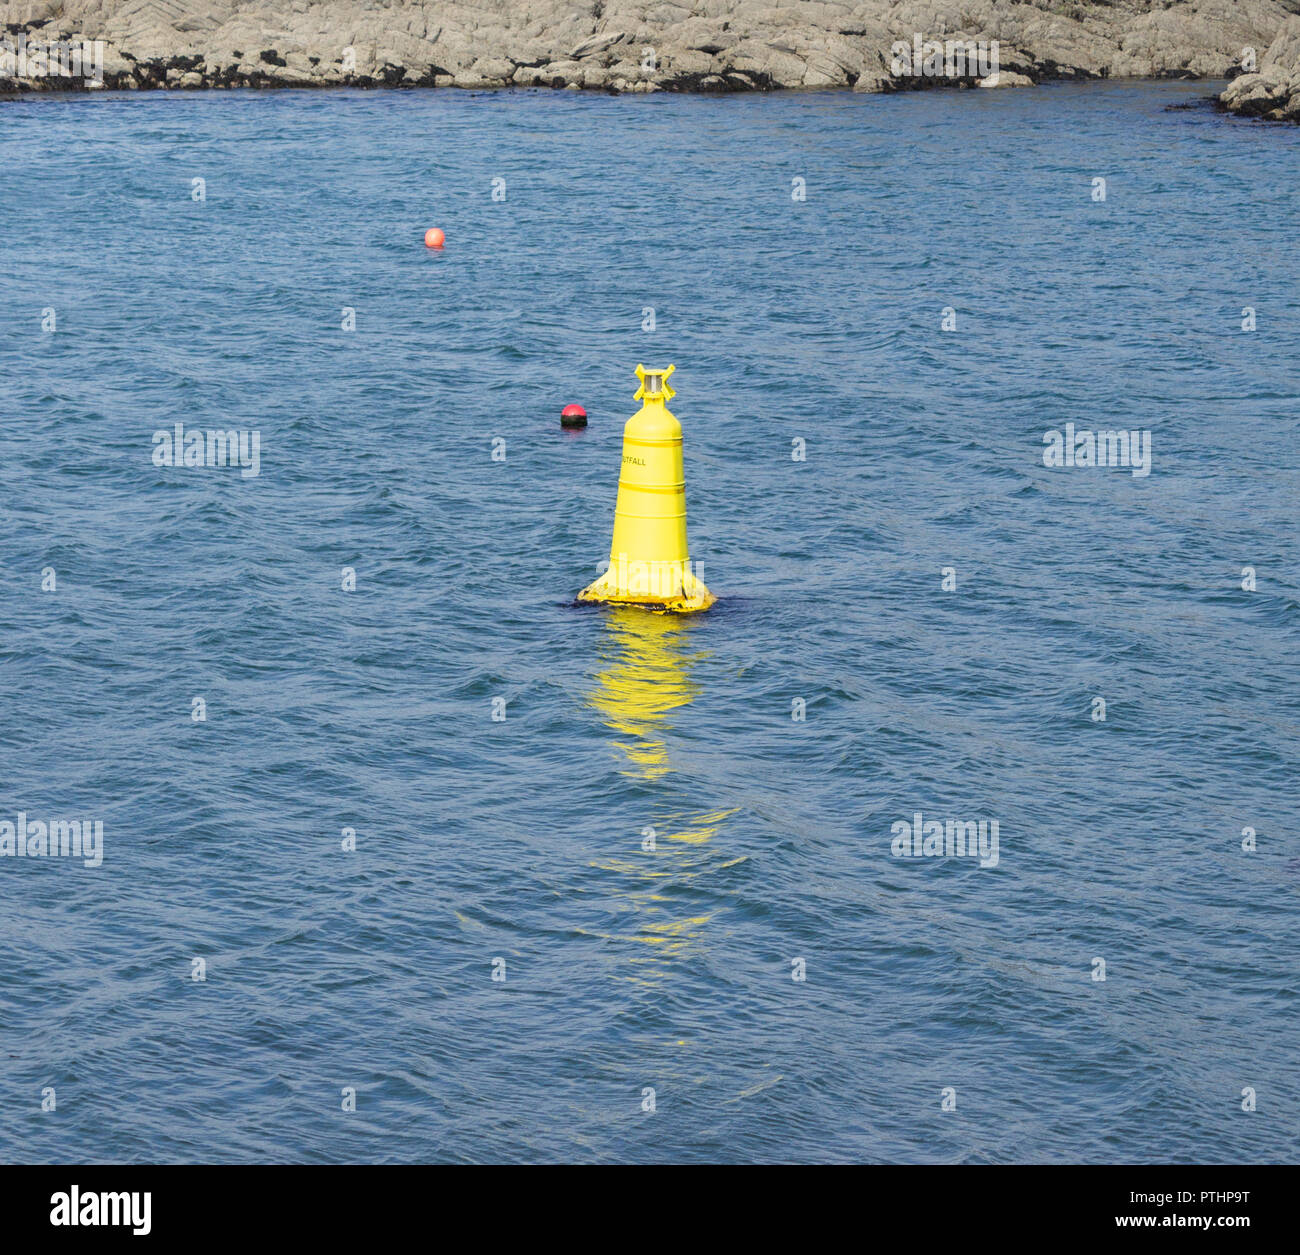 yellow coastal navigation markers showing or warning of an underwater outfall hazard - Stock Image